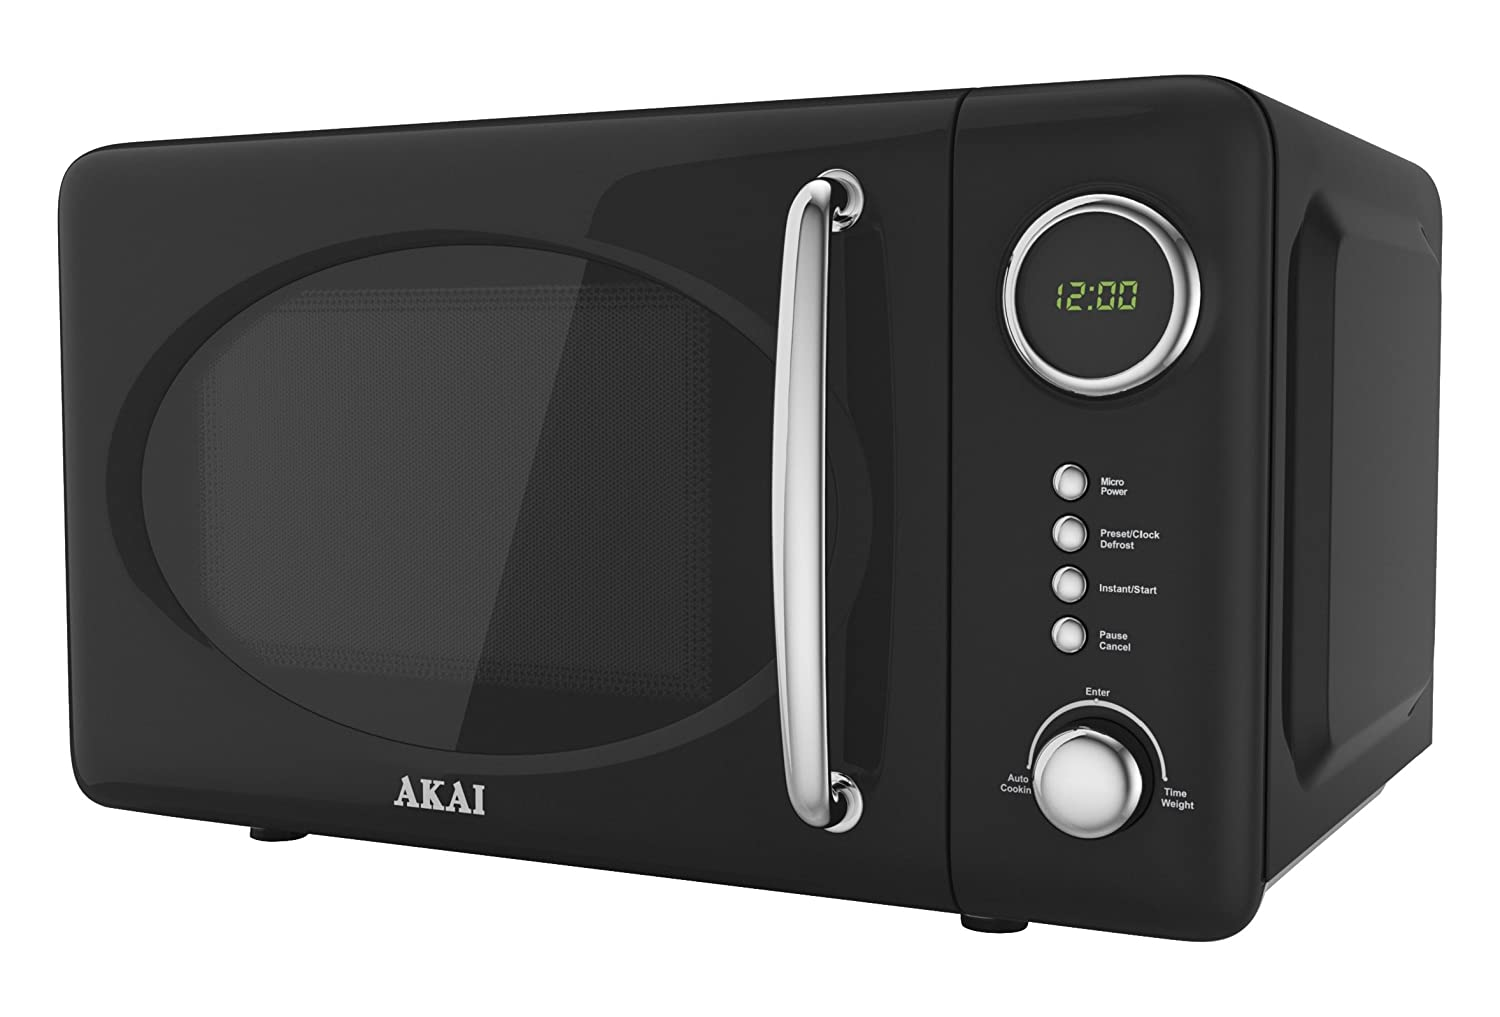 Akai A24006 Digital Solo Microwave with 5 Power Levels, 700 W, 20 Litre, Black